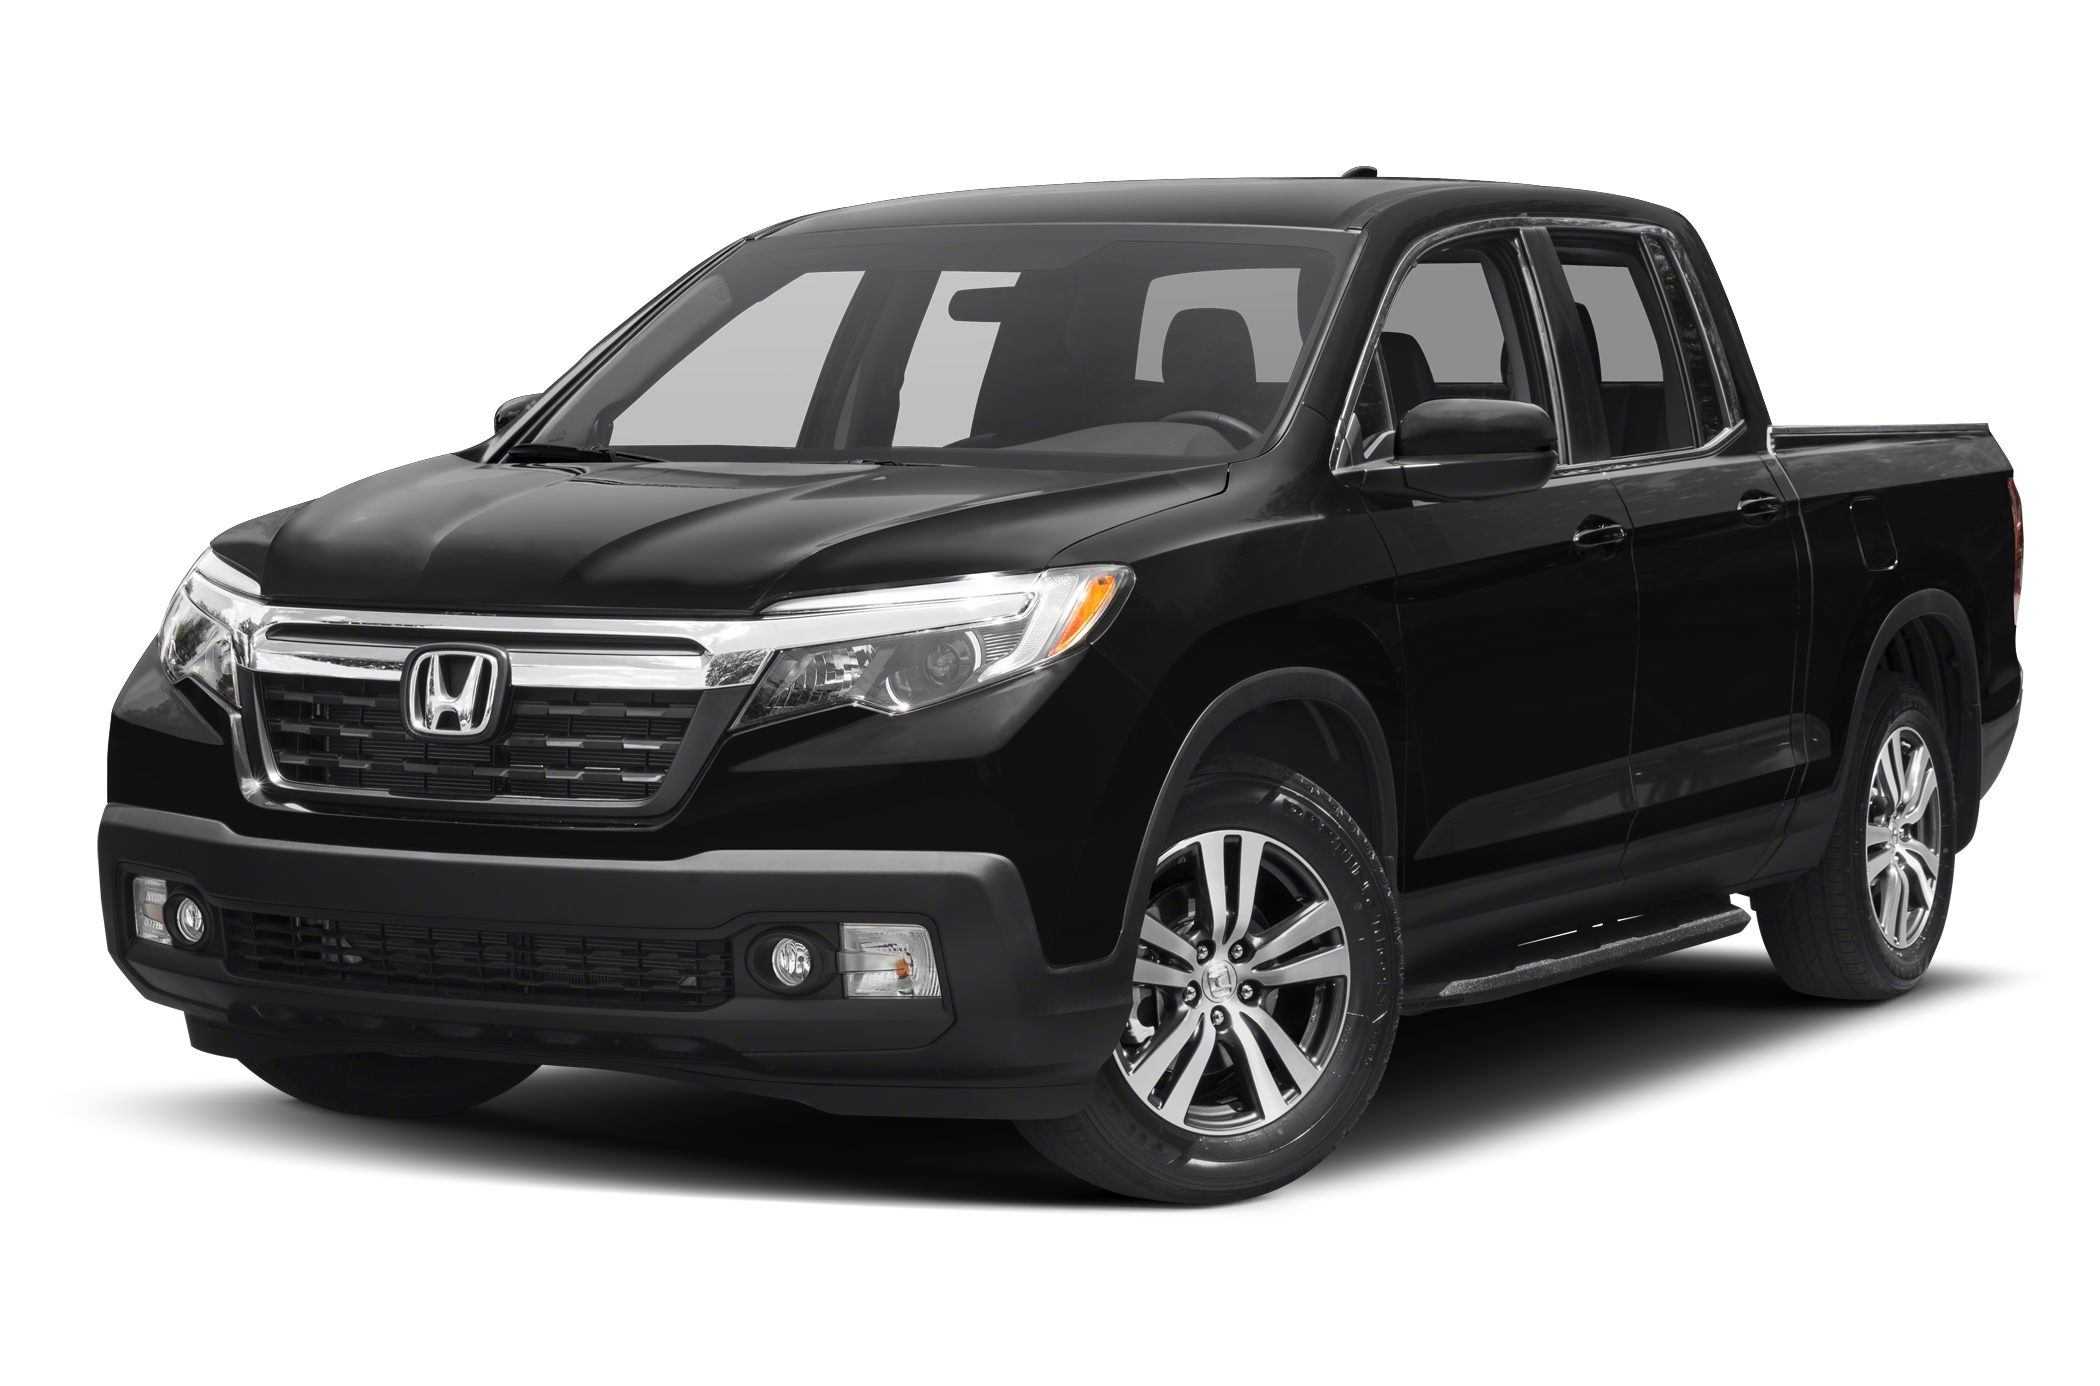 2017 Honda Ridgeline RTL Call us now Truck buying made easy Buy a new Honda from Diamond Valley